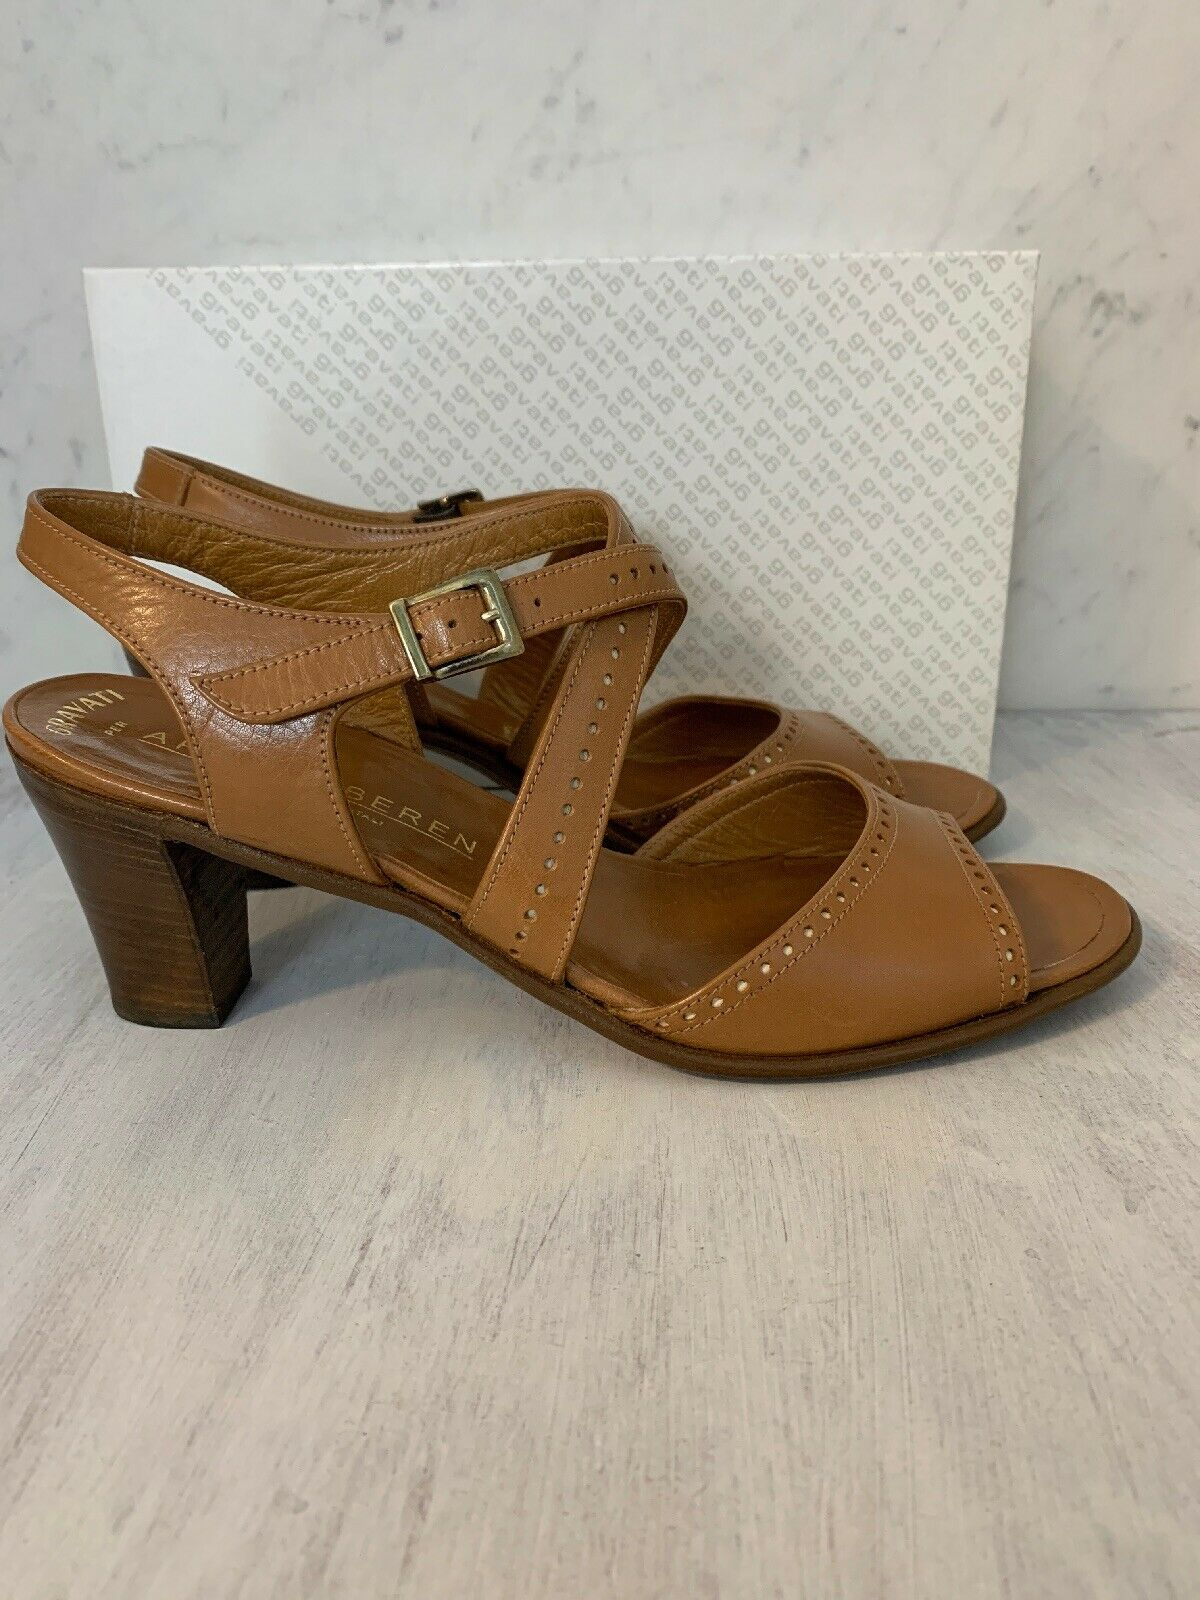 Gravati Fir Arthur Beren damen Sandals 8.5 braun Leather